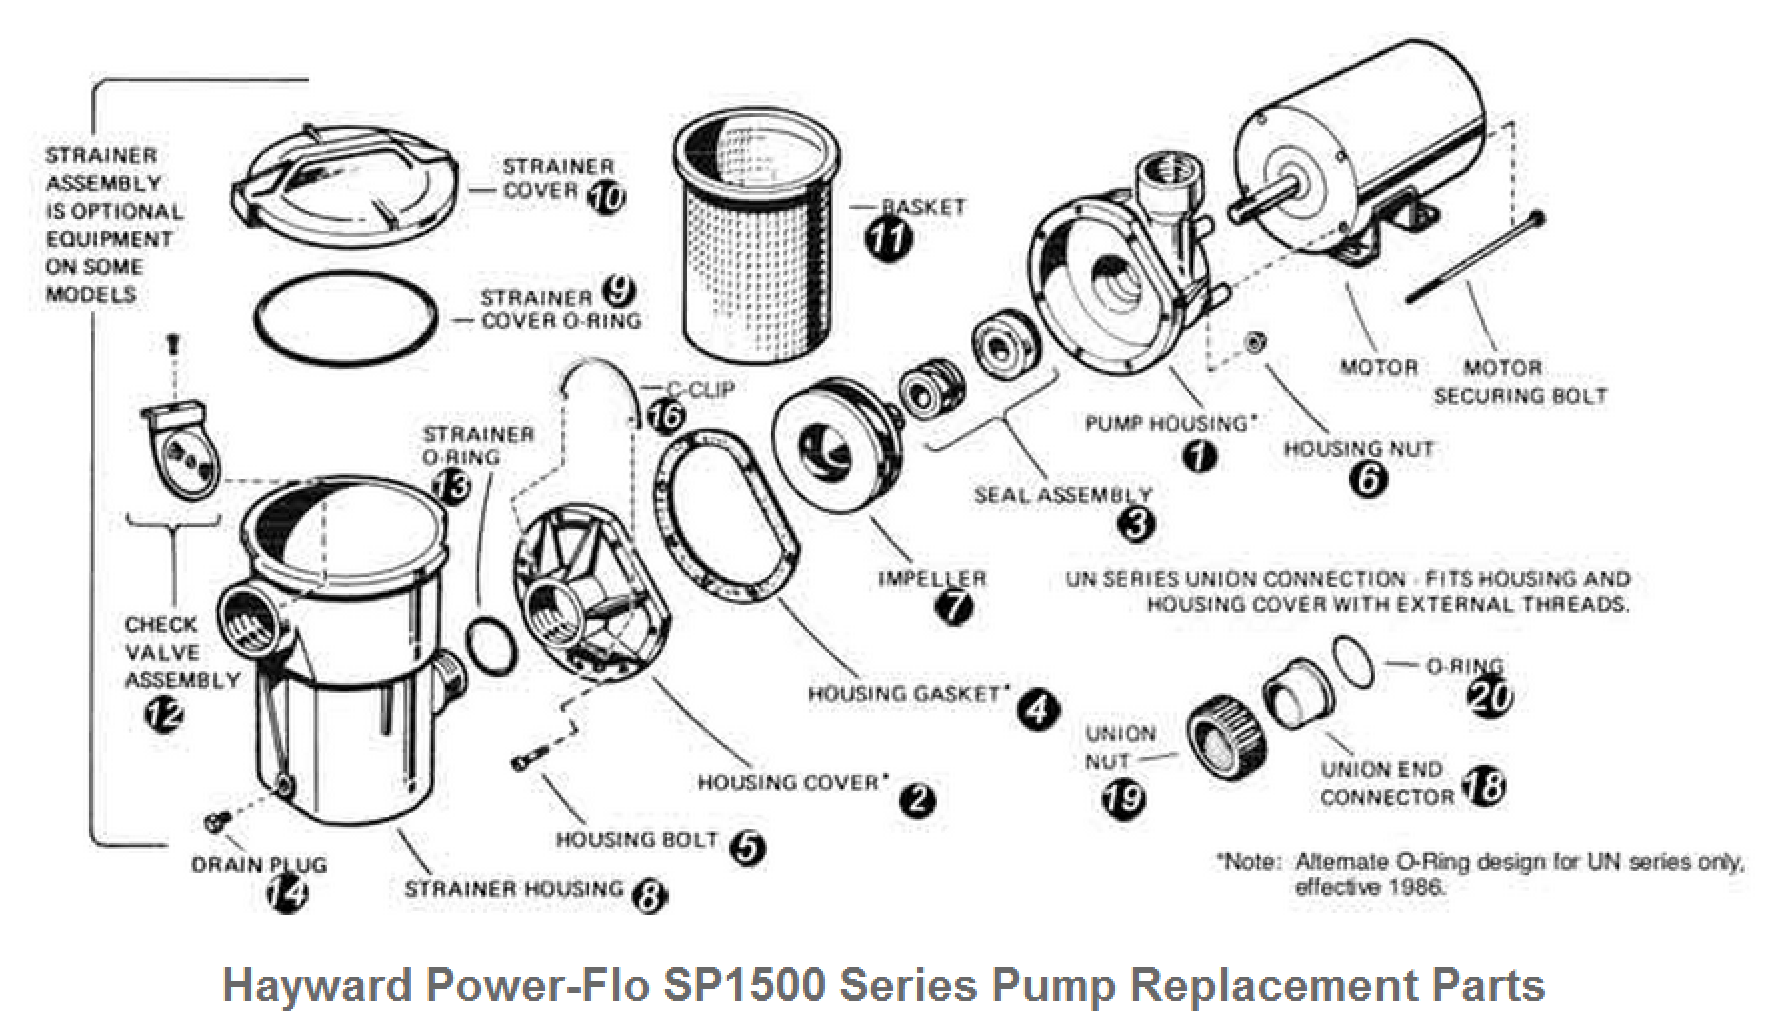 hayward-power-flo-sp1500-parts-breakdown.png